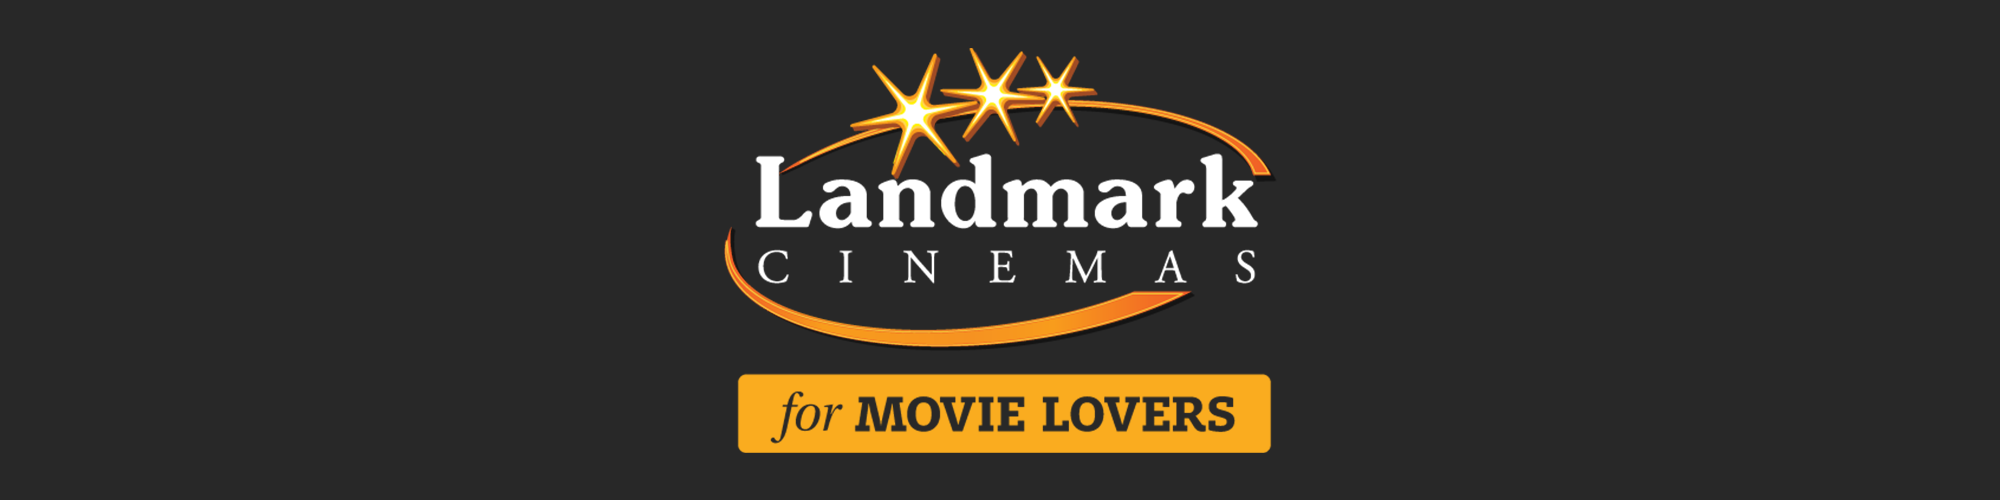 Landmark Cinemas contest banner